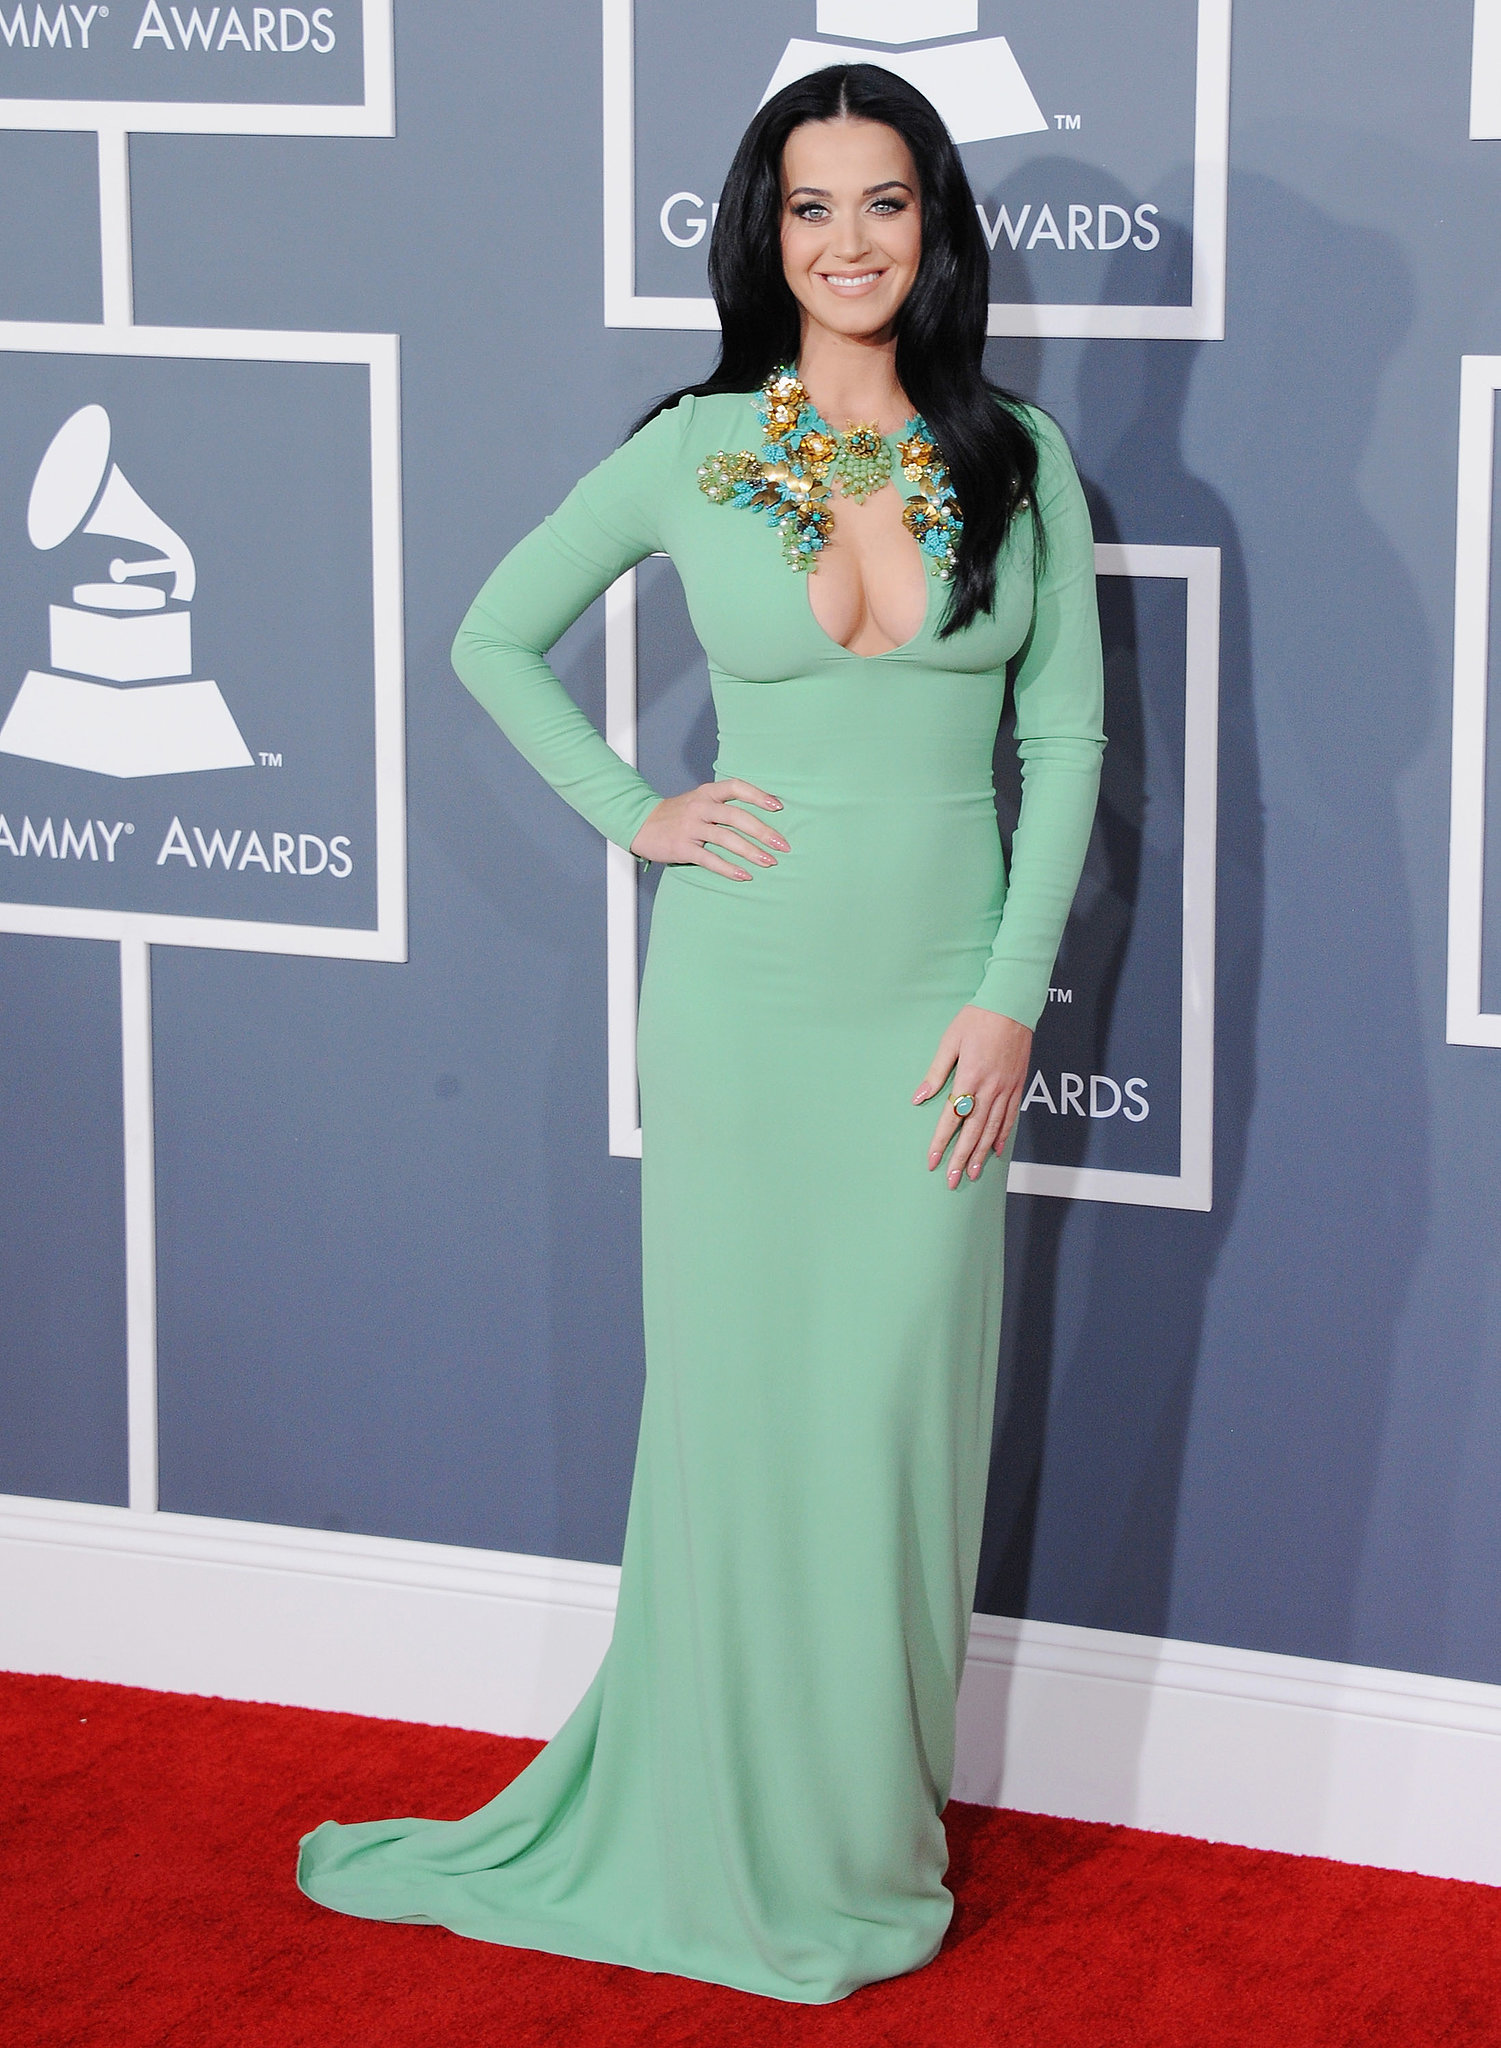 Katy Perry Took The 2013 Grammys Red Carpet By Storm In A Dazzling How Katy Perry Transformed